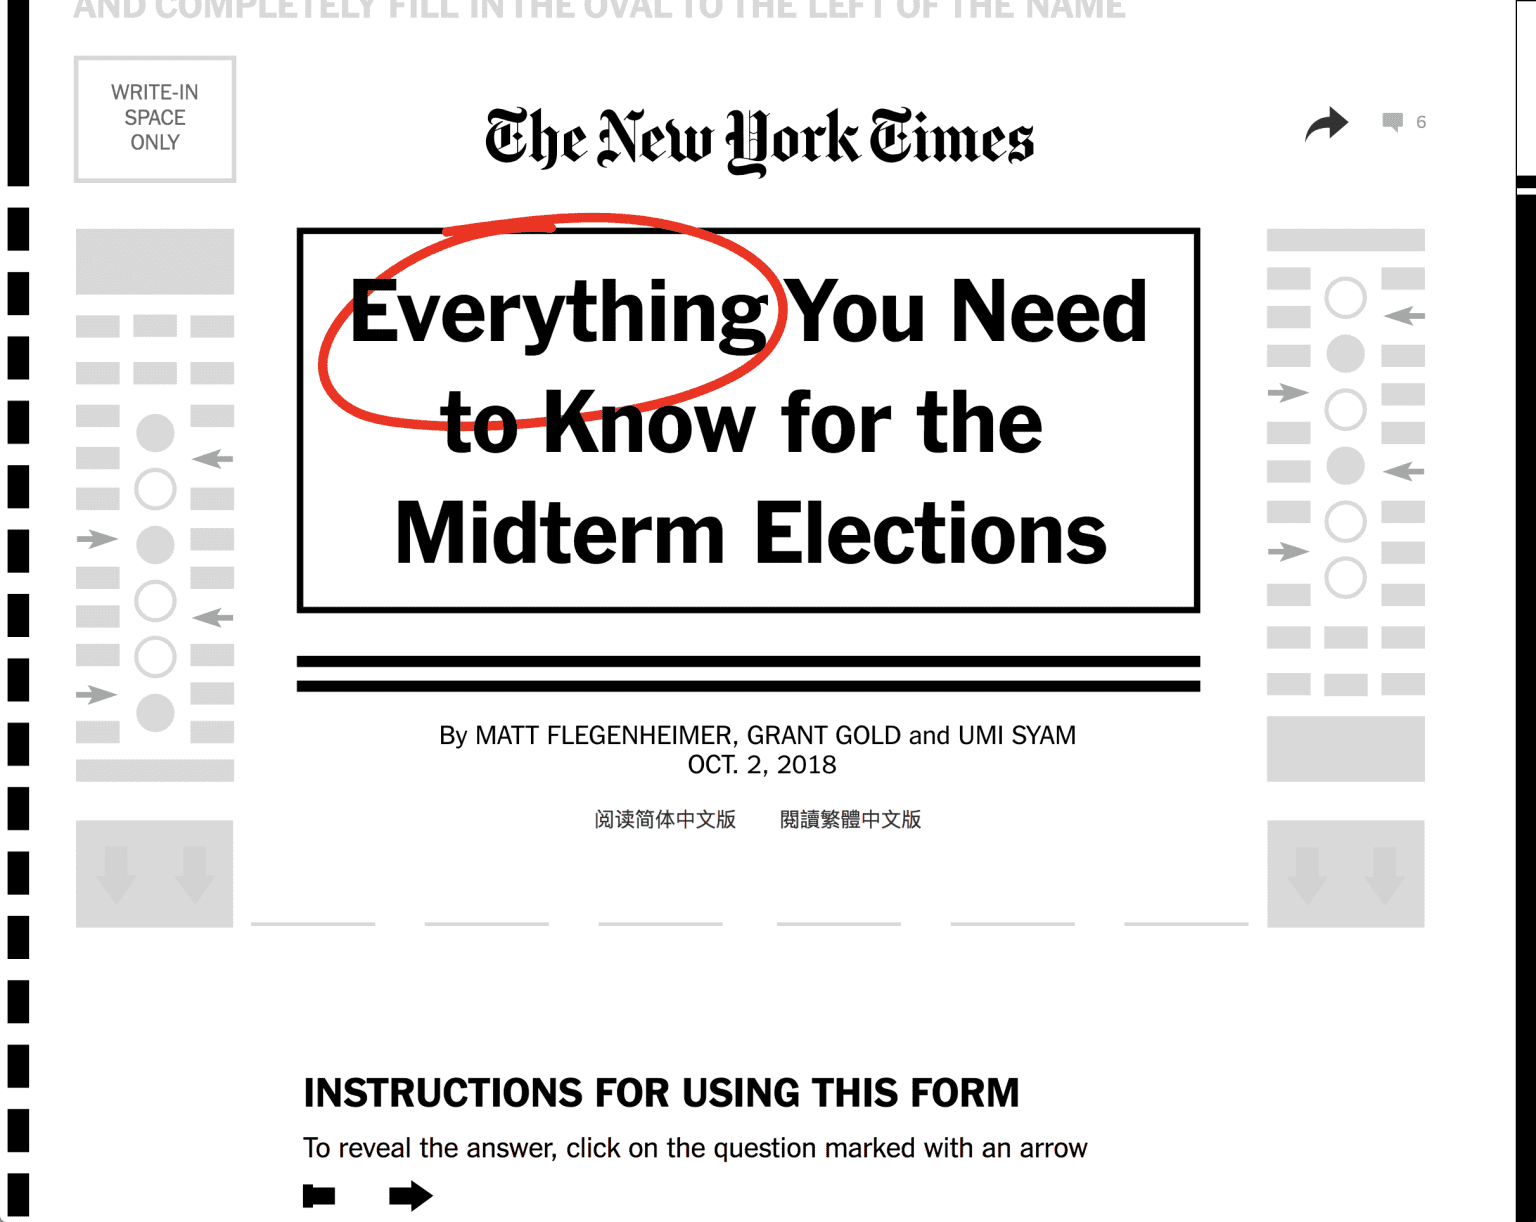 Everything You Need to Know for the Midterm Elections